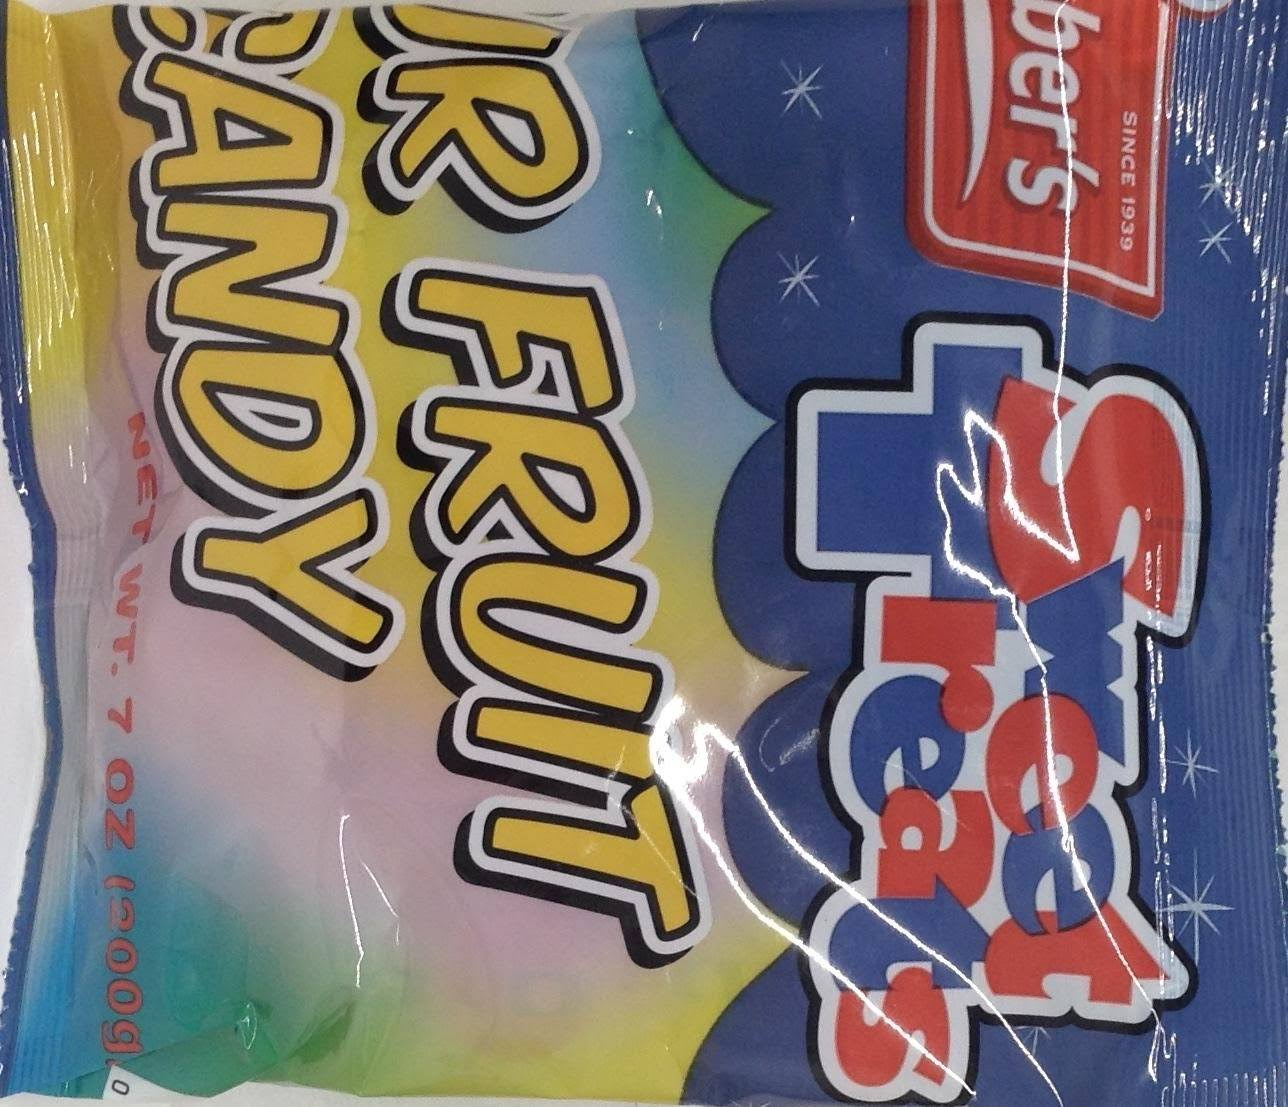 Lieber's Sour Fruit Candy Kosher for